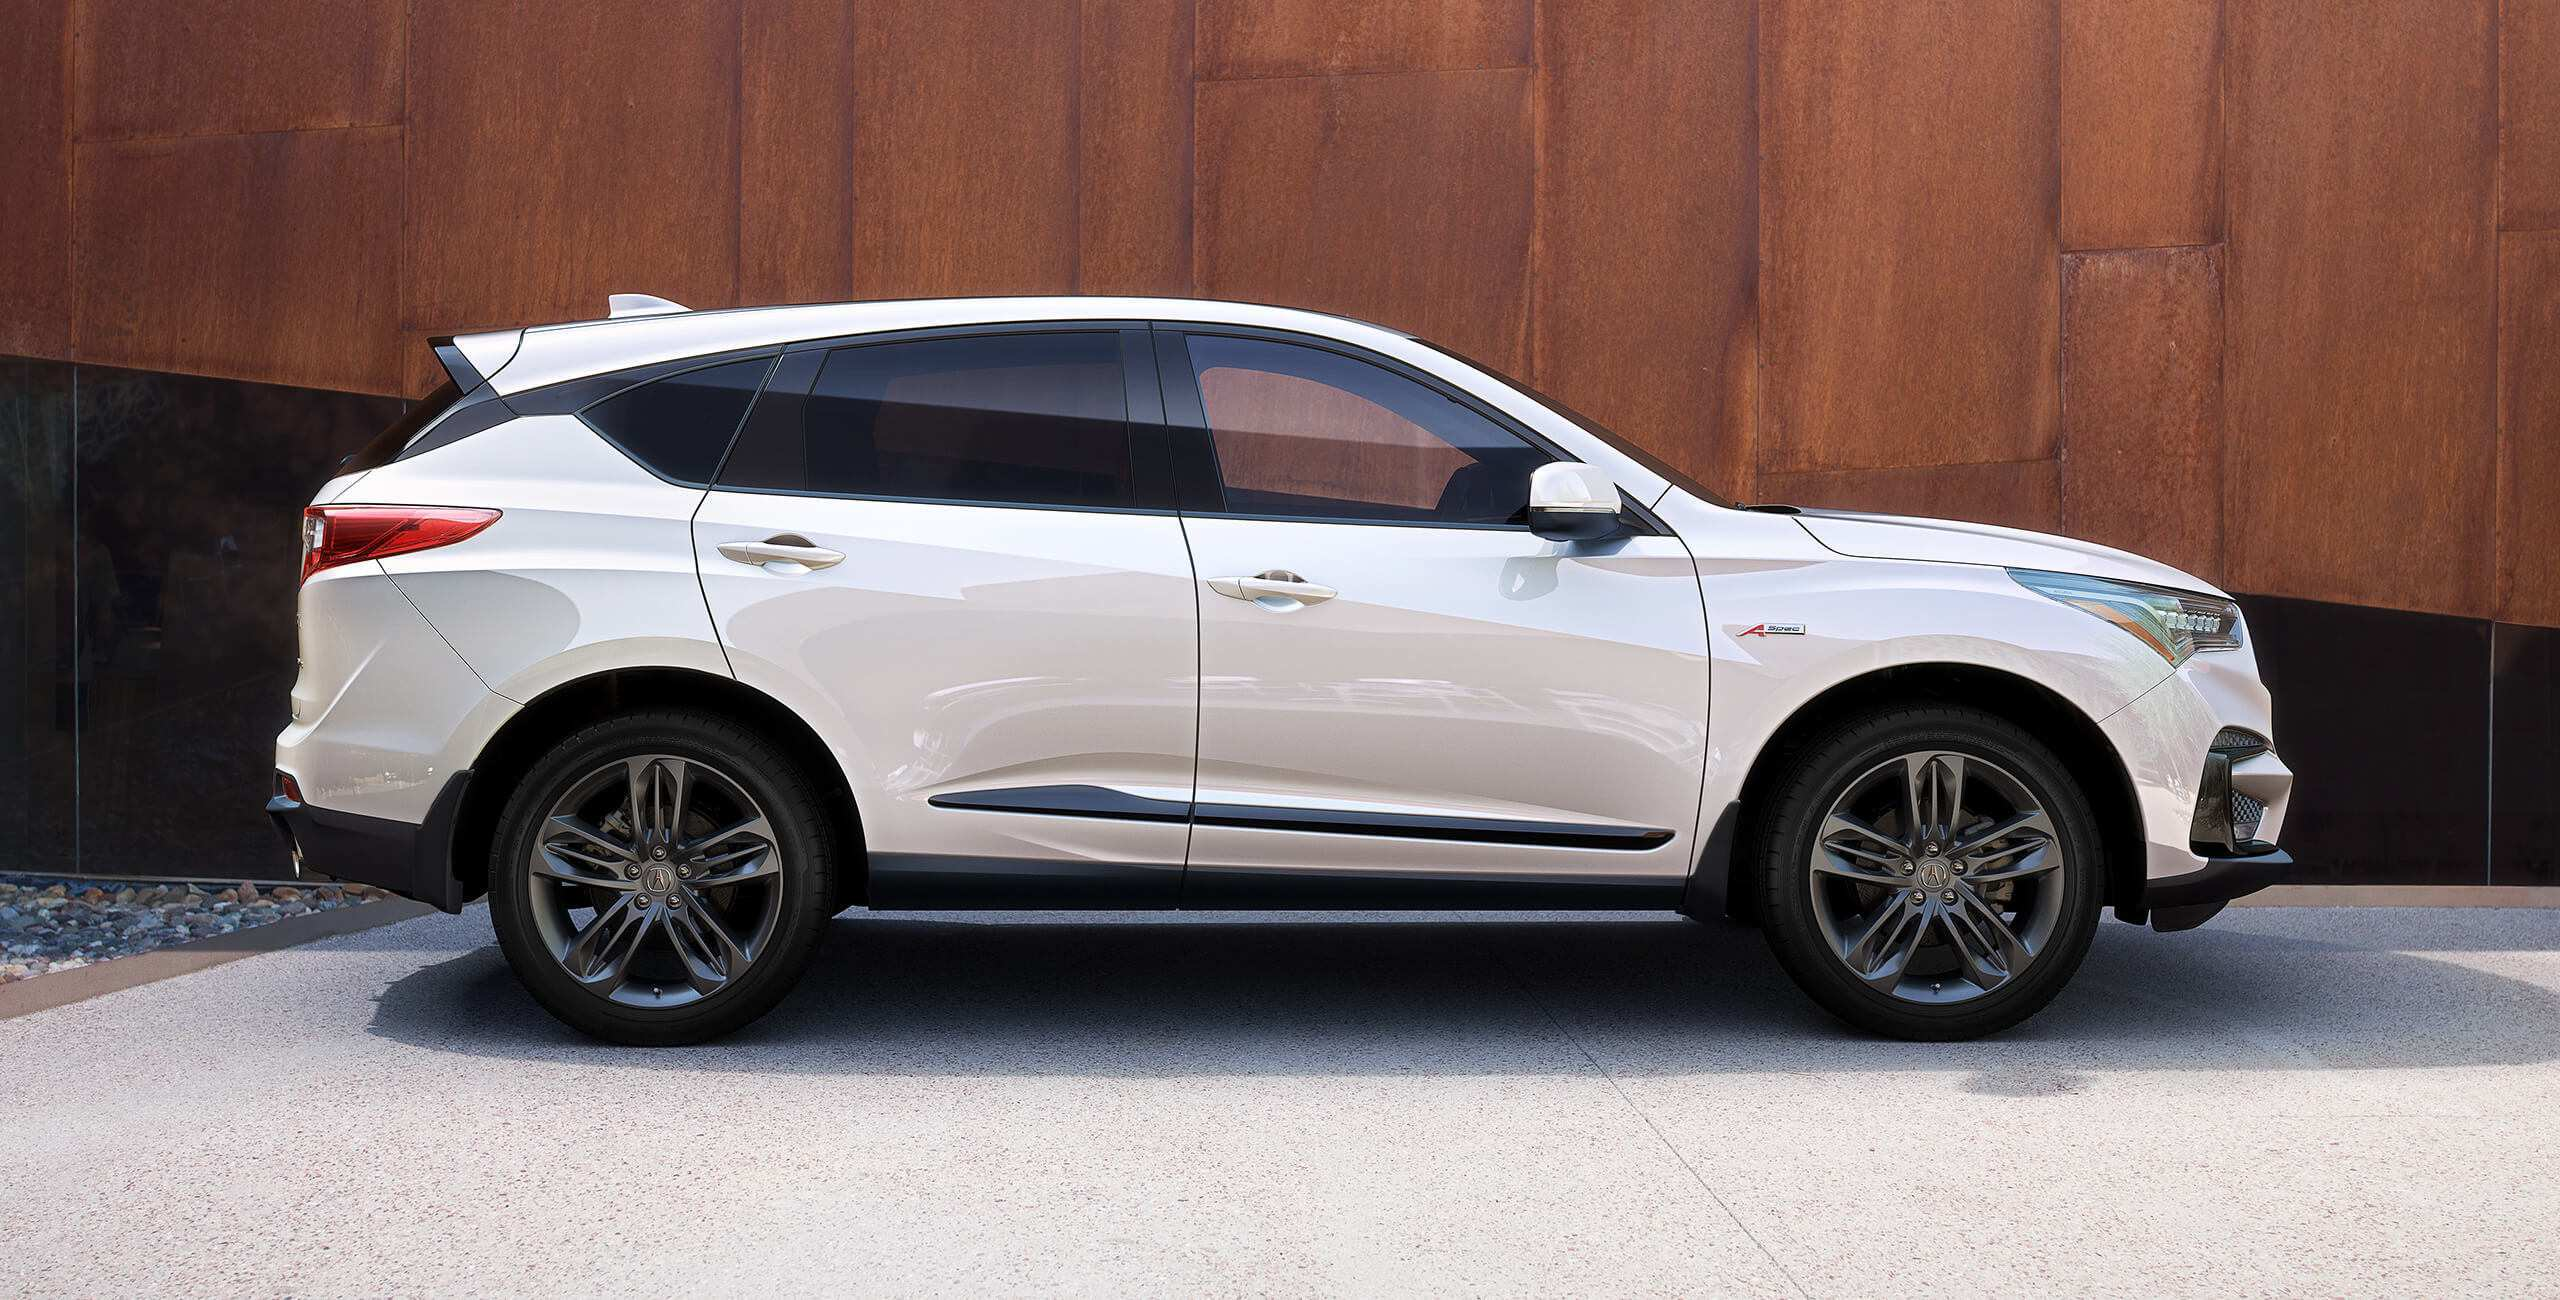 96 The Best 2019 Acura RDX Picture